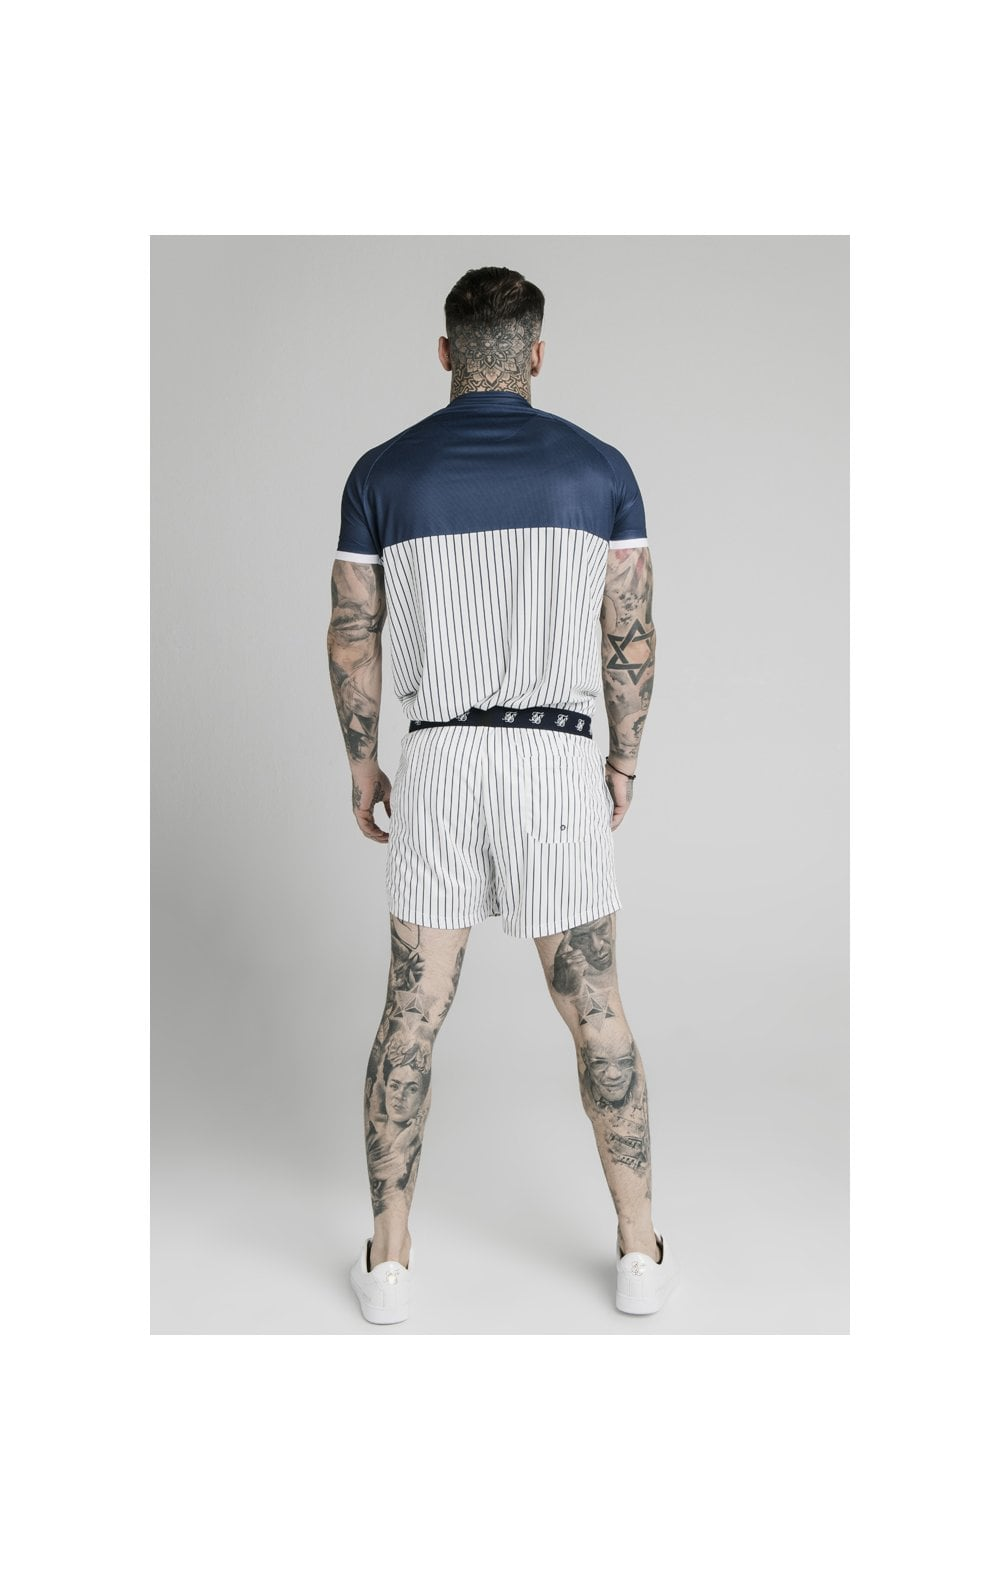 Load image into Gallery viewer, SikSilk S/S Pinstripe Baseball Tee - Navy & White (5)